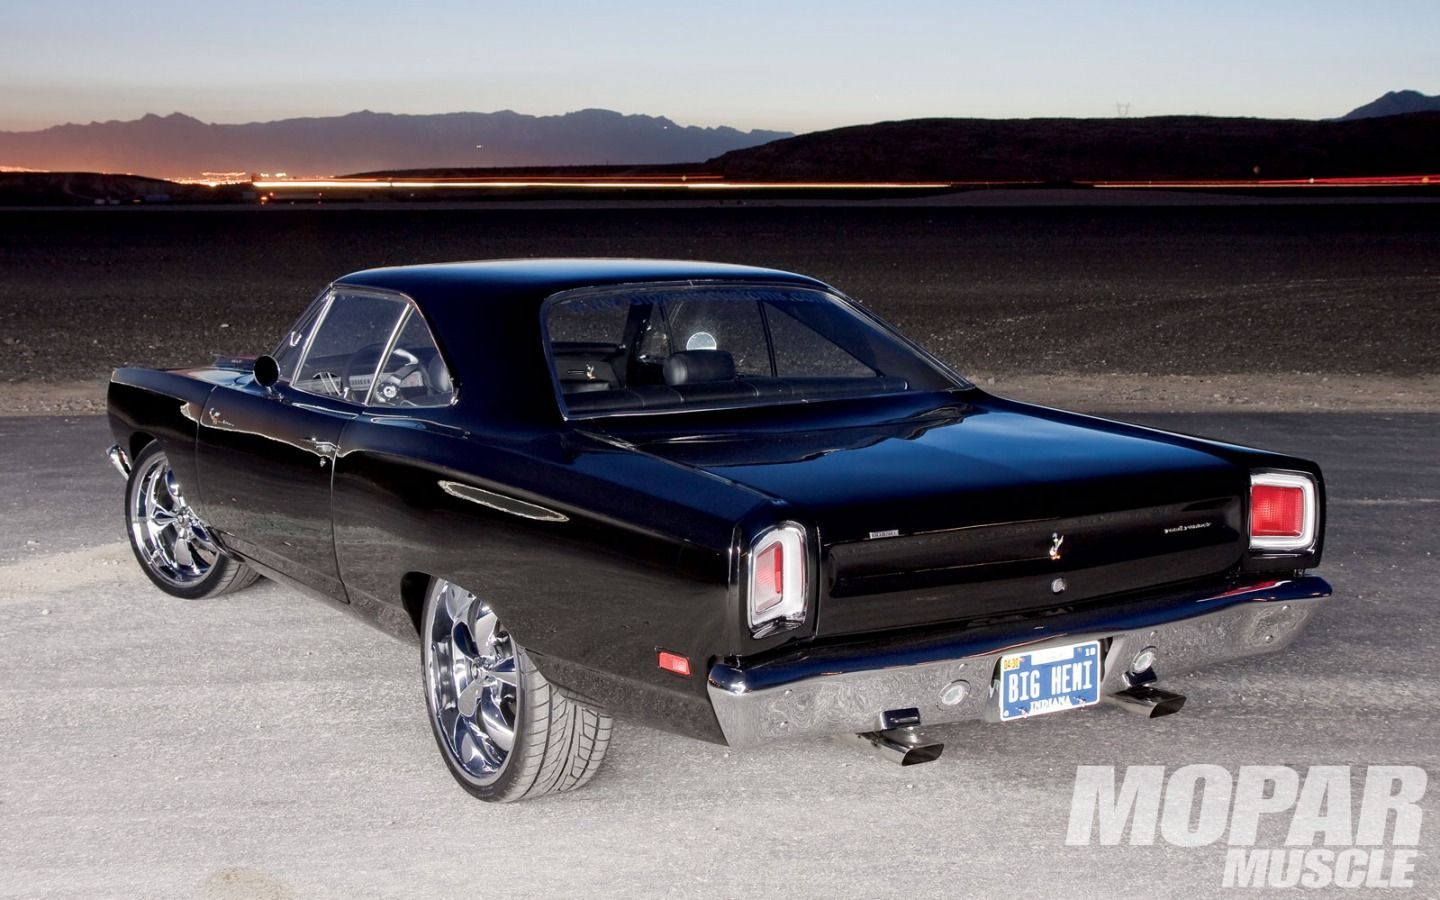 1969 Road Runner minus the dumb wheels. It's supposed to be a SLEEPER. Not some flashy car